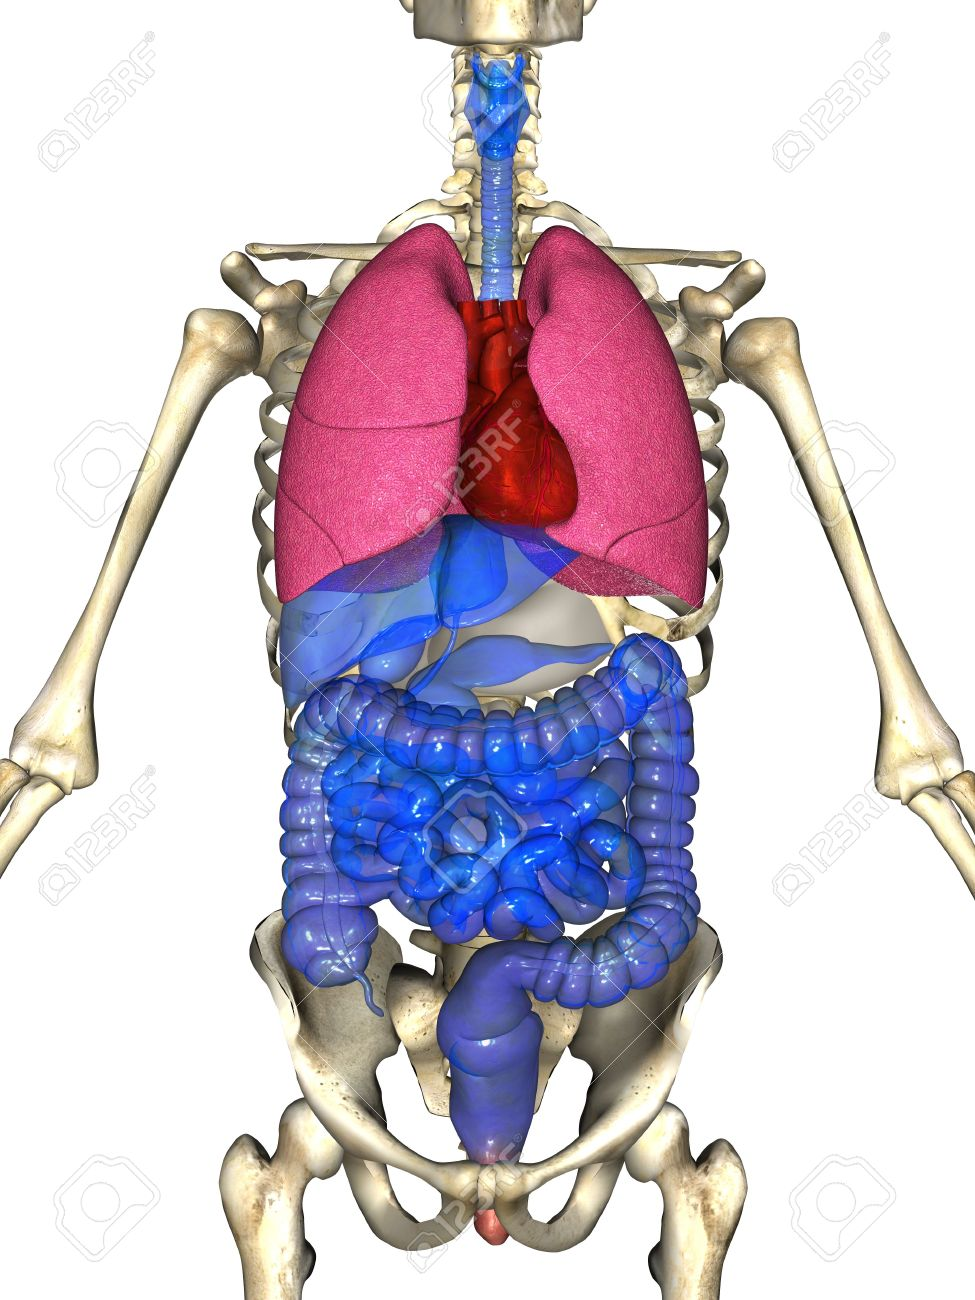 3d rendering of the major organ systems of the human body 3d rendering of the major organ systems of the human body superimposed in position over the ccuart